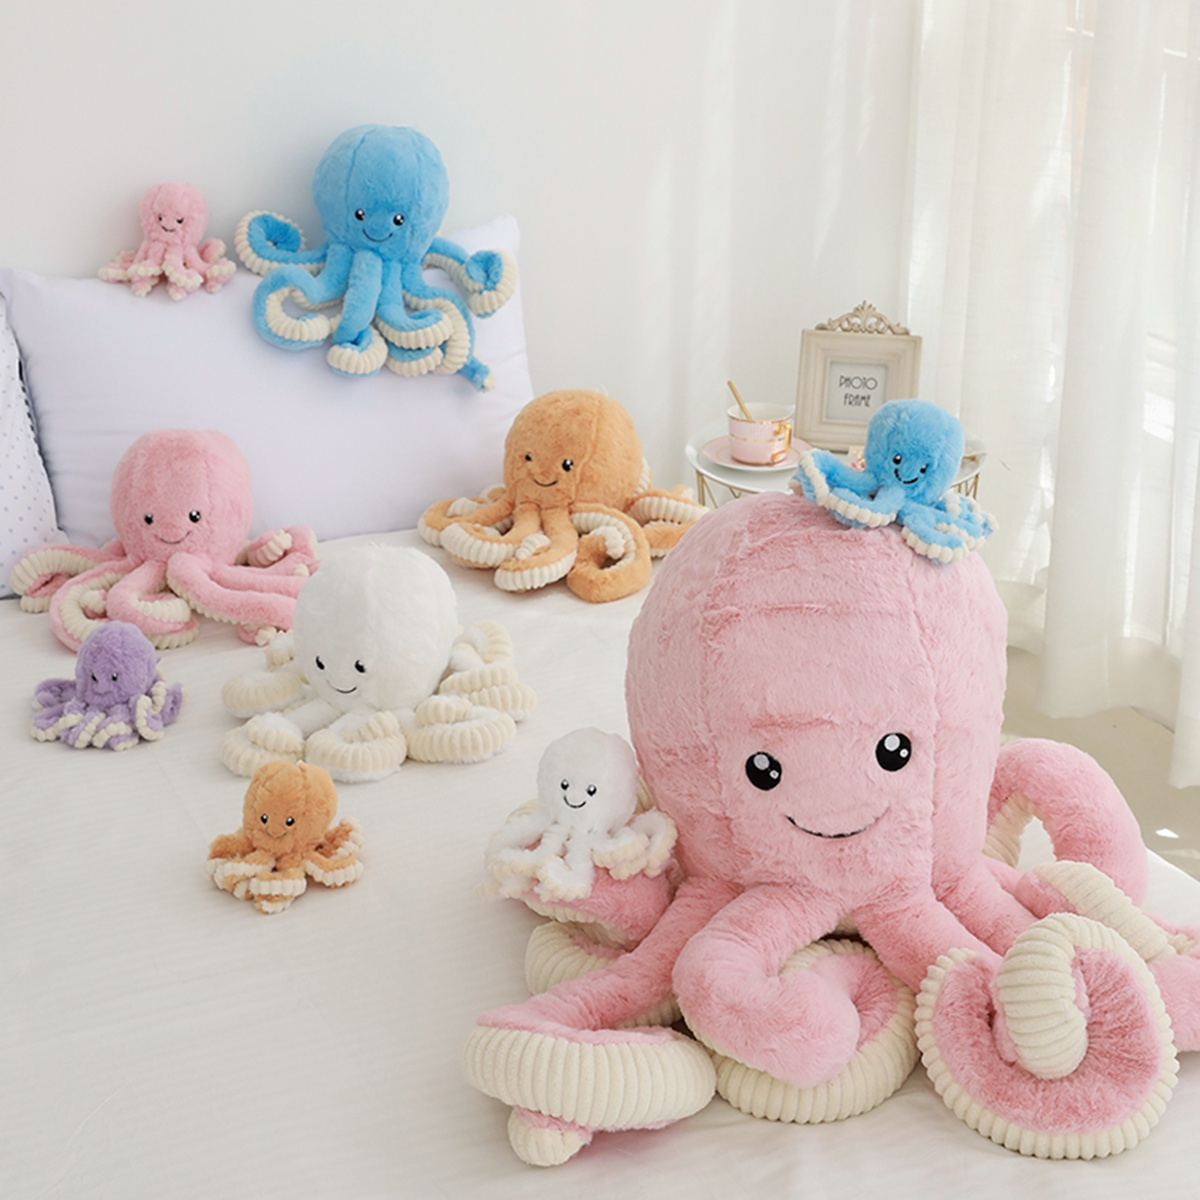 1pc 18cm Lovely Simulation Octopus Pendant Plush Stuffed Toy Soft Animal Home Accessories Cute Animal Doll Children Gifts